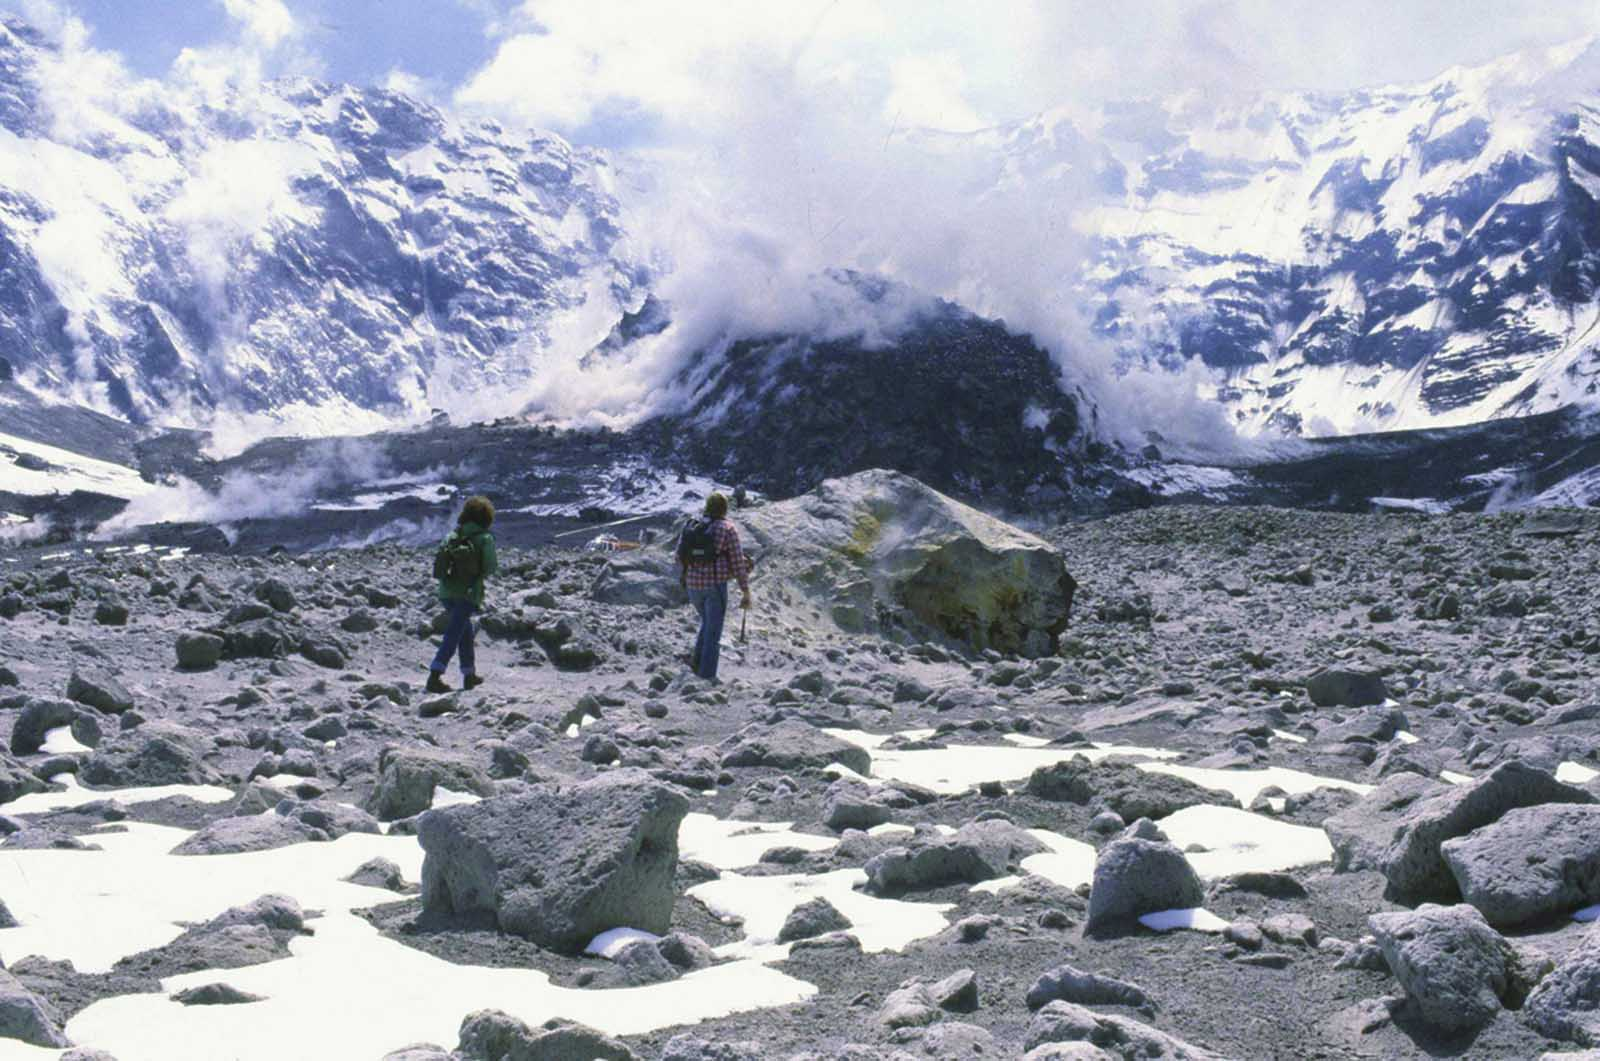 A Washington state geologist and a reporter walk toward the crater of Mount St. Helens in May of 1981, almost a year after the volcano exploded, causing dramatic destruction for miles around. They were near the steaming lava dome with the snow-covered crater wall beyond.